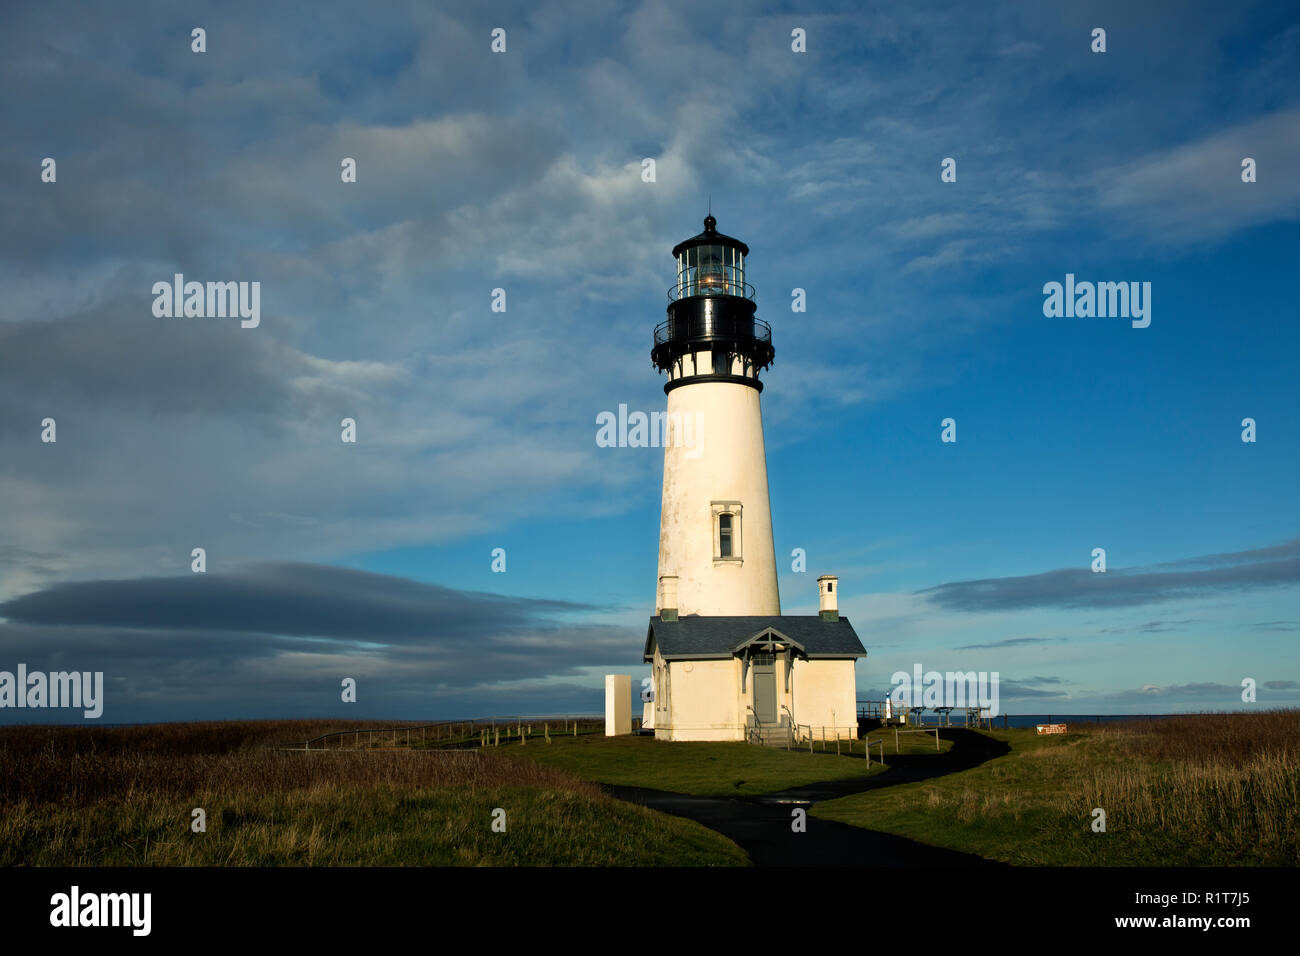 OR02387-00...OREGON - Yaquina Head Lighthouse in the Yaquina Head Outstanding Natural Area. Stock Photo